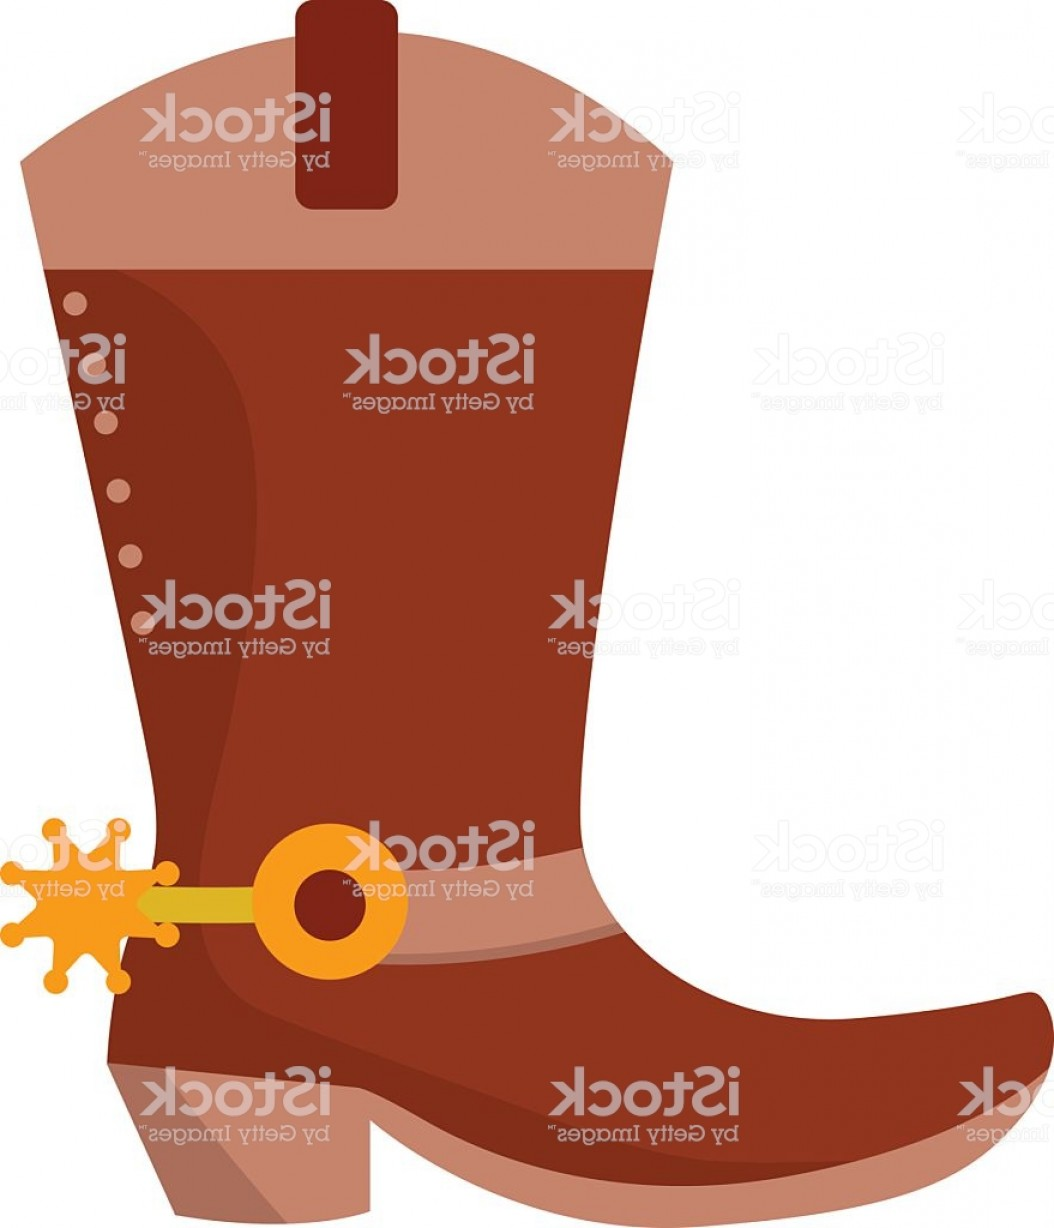 Spurs Clip Art Vector: Wild West Leather Cowboy Boot With Spurs And Stars Vector Gm